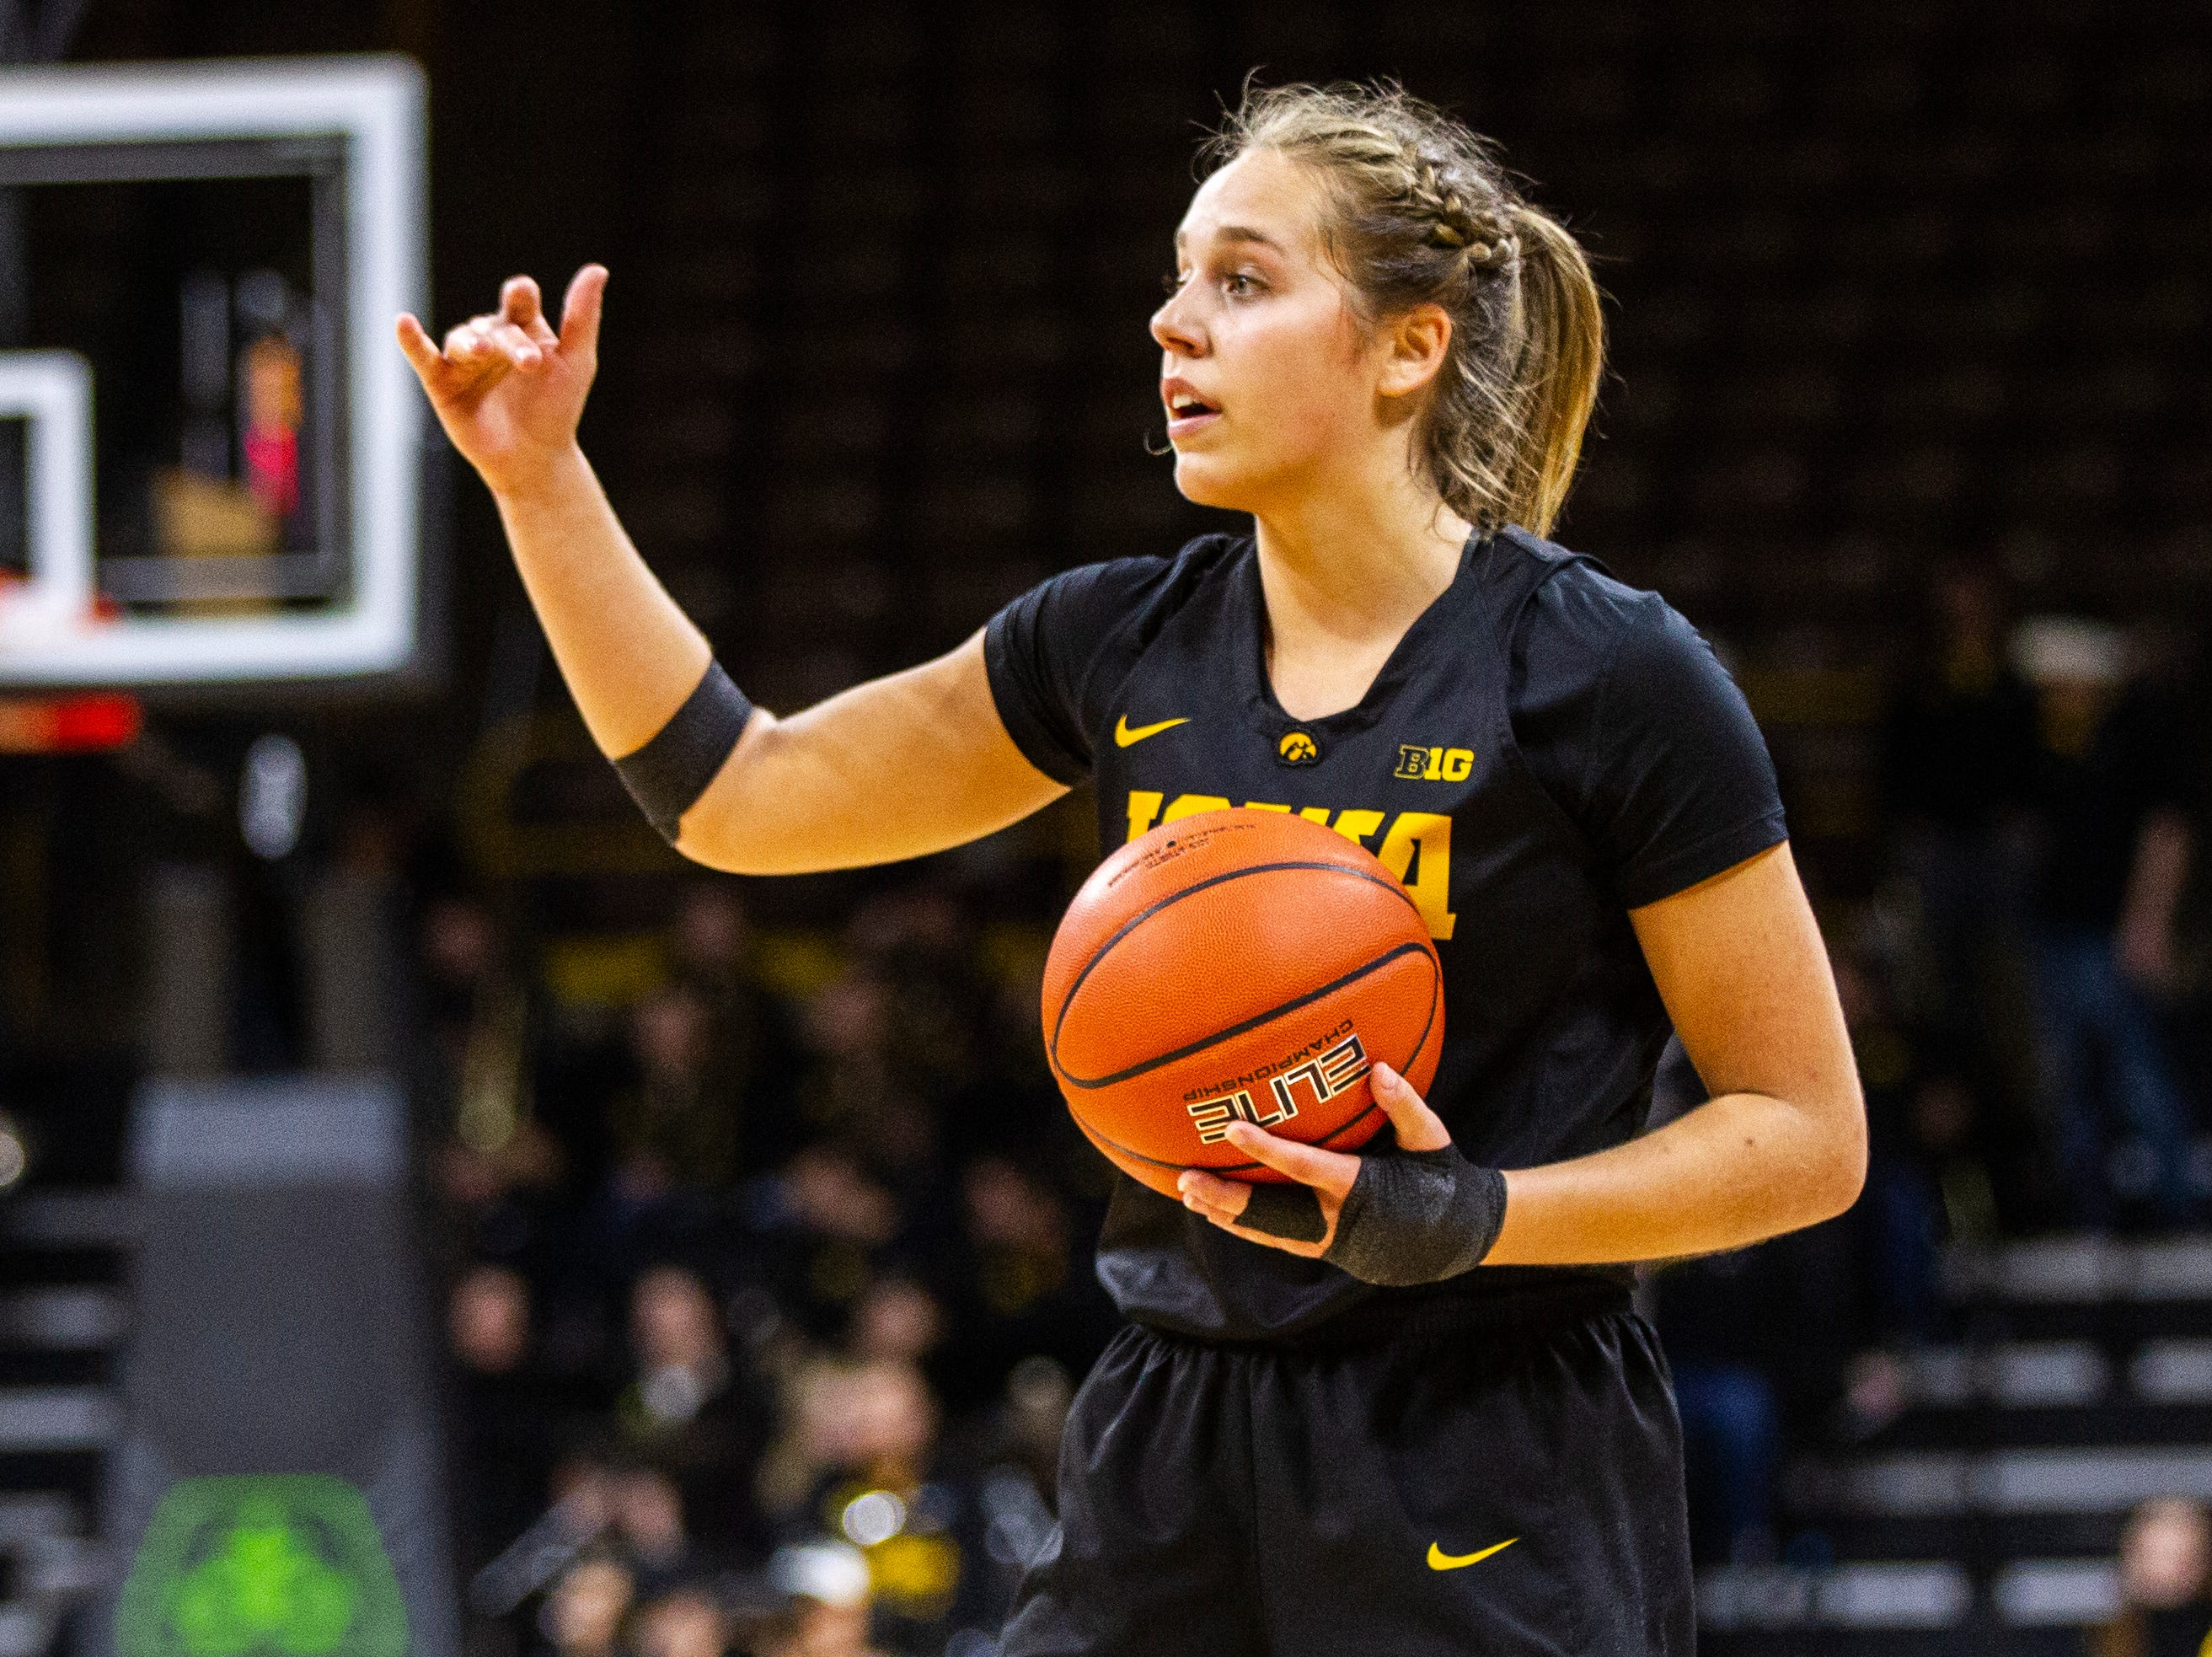 Iowa guard Kathleen Doyle calls out to teammates during a Cy-Hawk series NCAA women's basketball game on Wednesday, Dec. 5, 2018, at Carver-Hawkeye Arena in Iowa City.